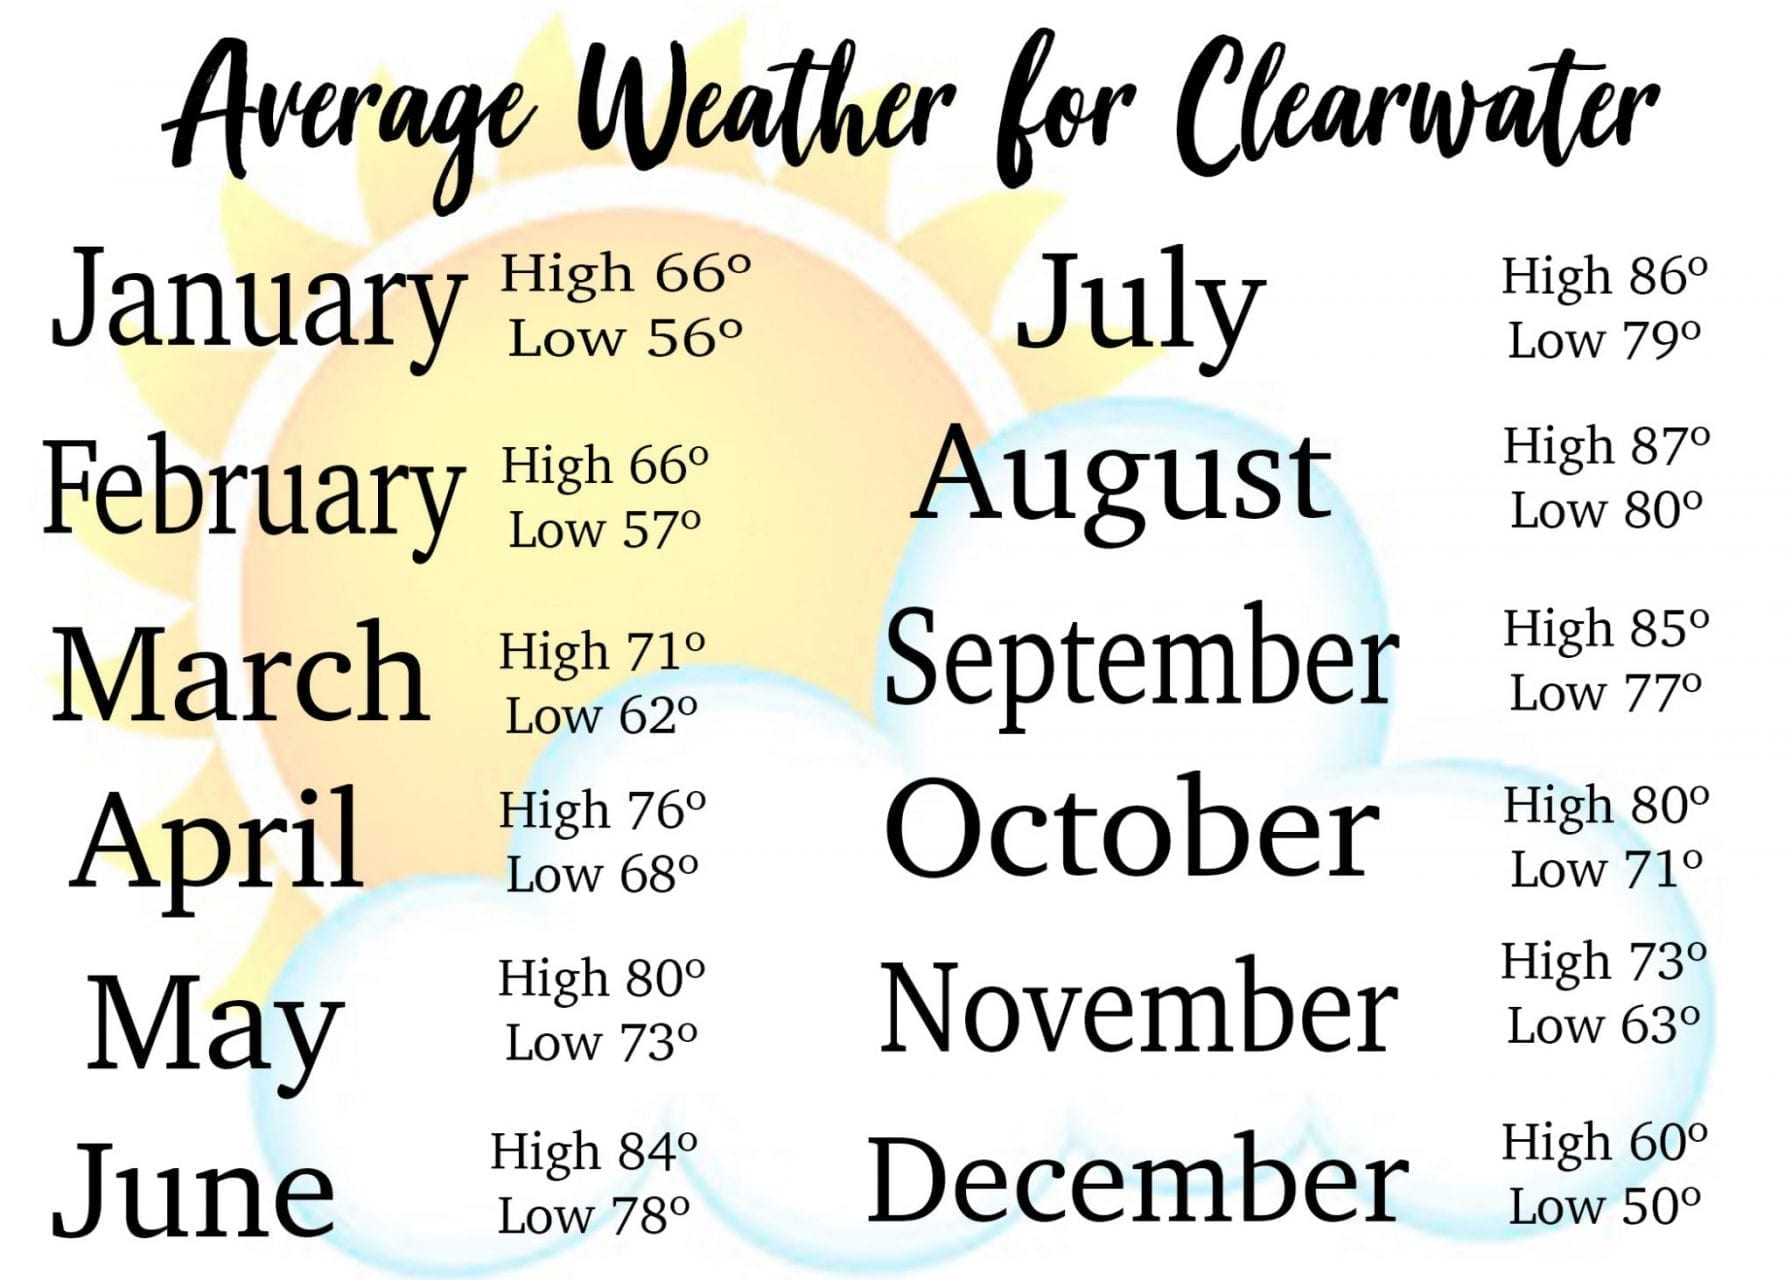 Average Temperatures for Clearwater Beach